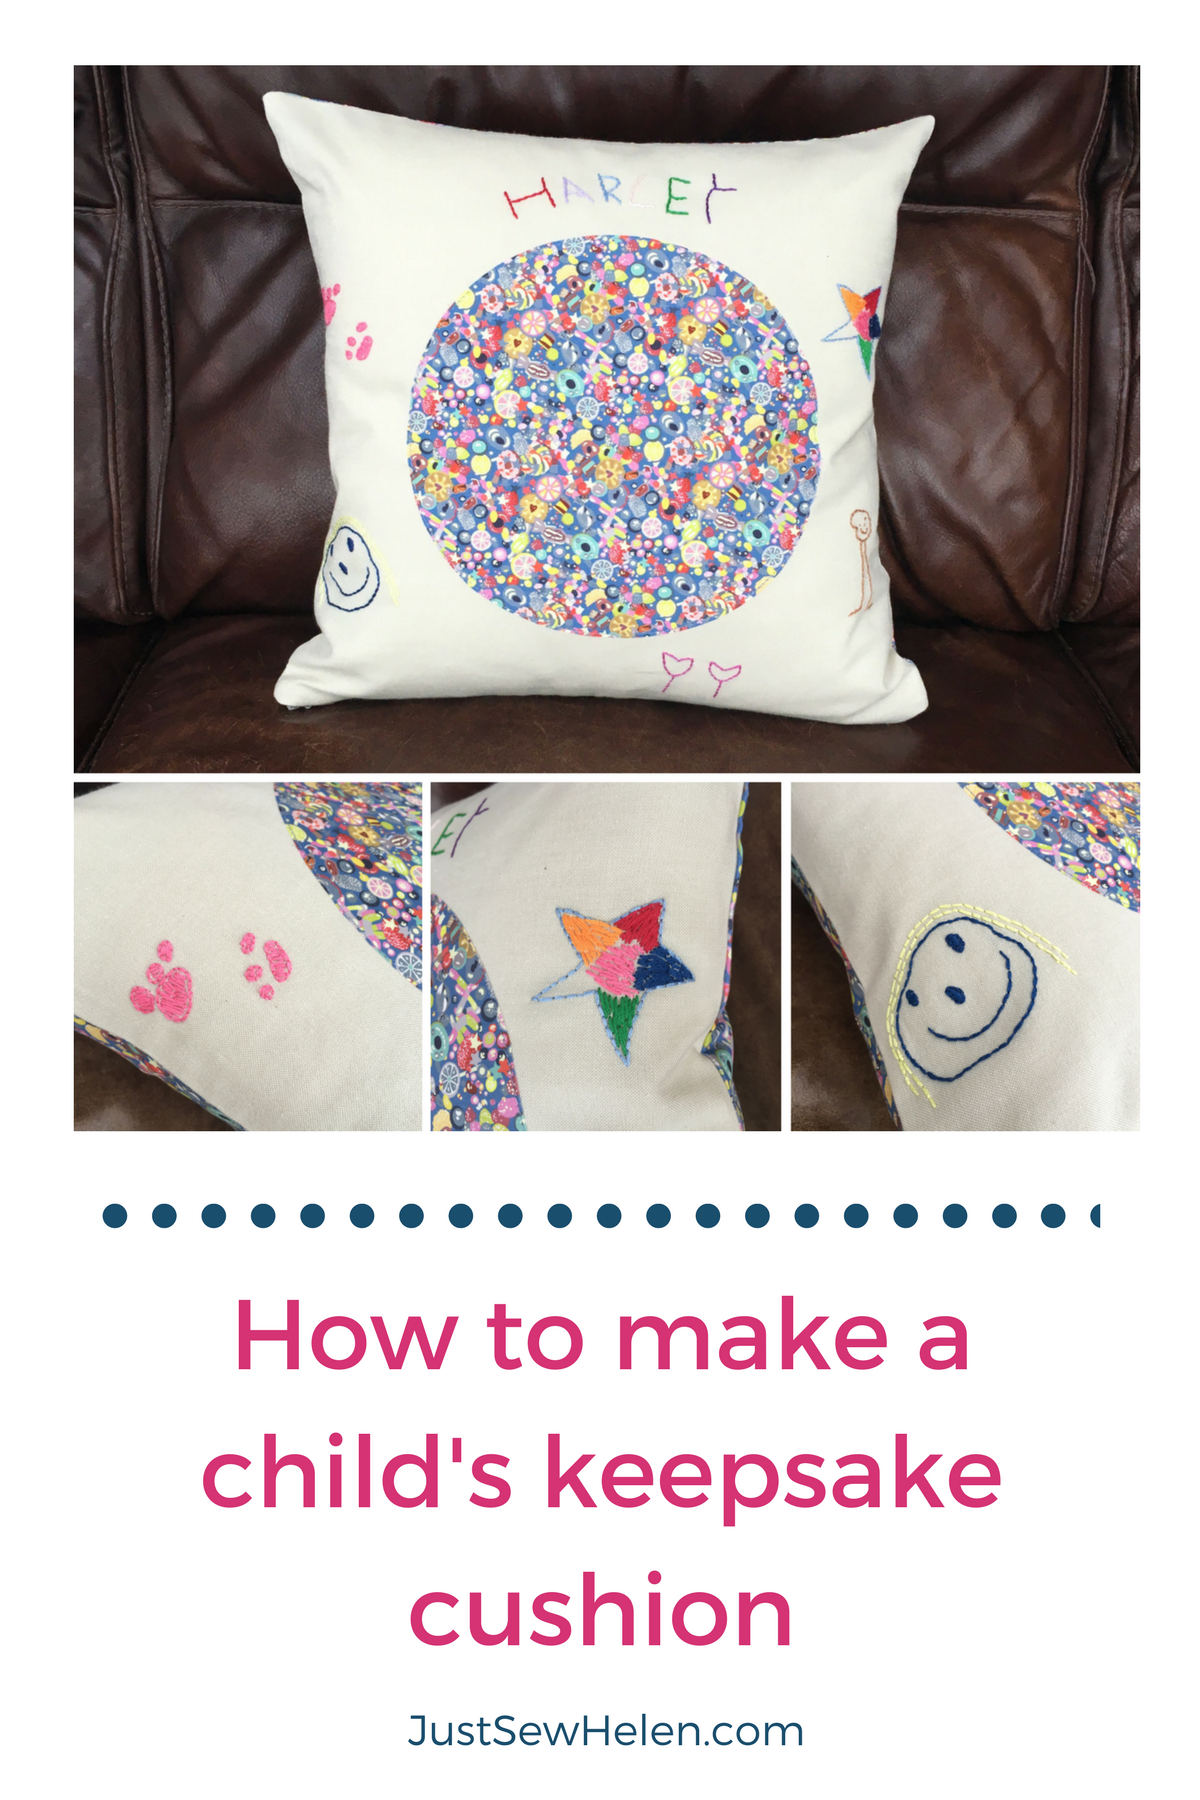 How to make a childs keepsake cushion - JustSewHelen.com